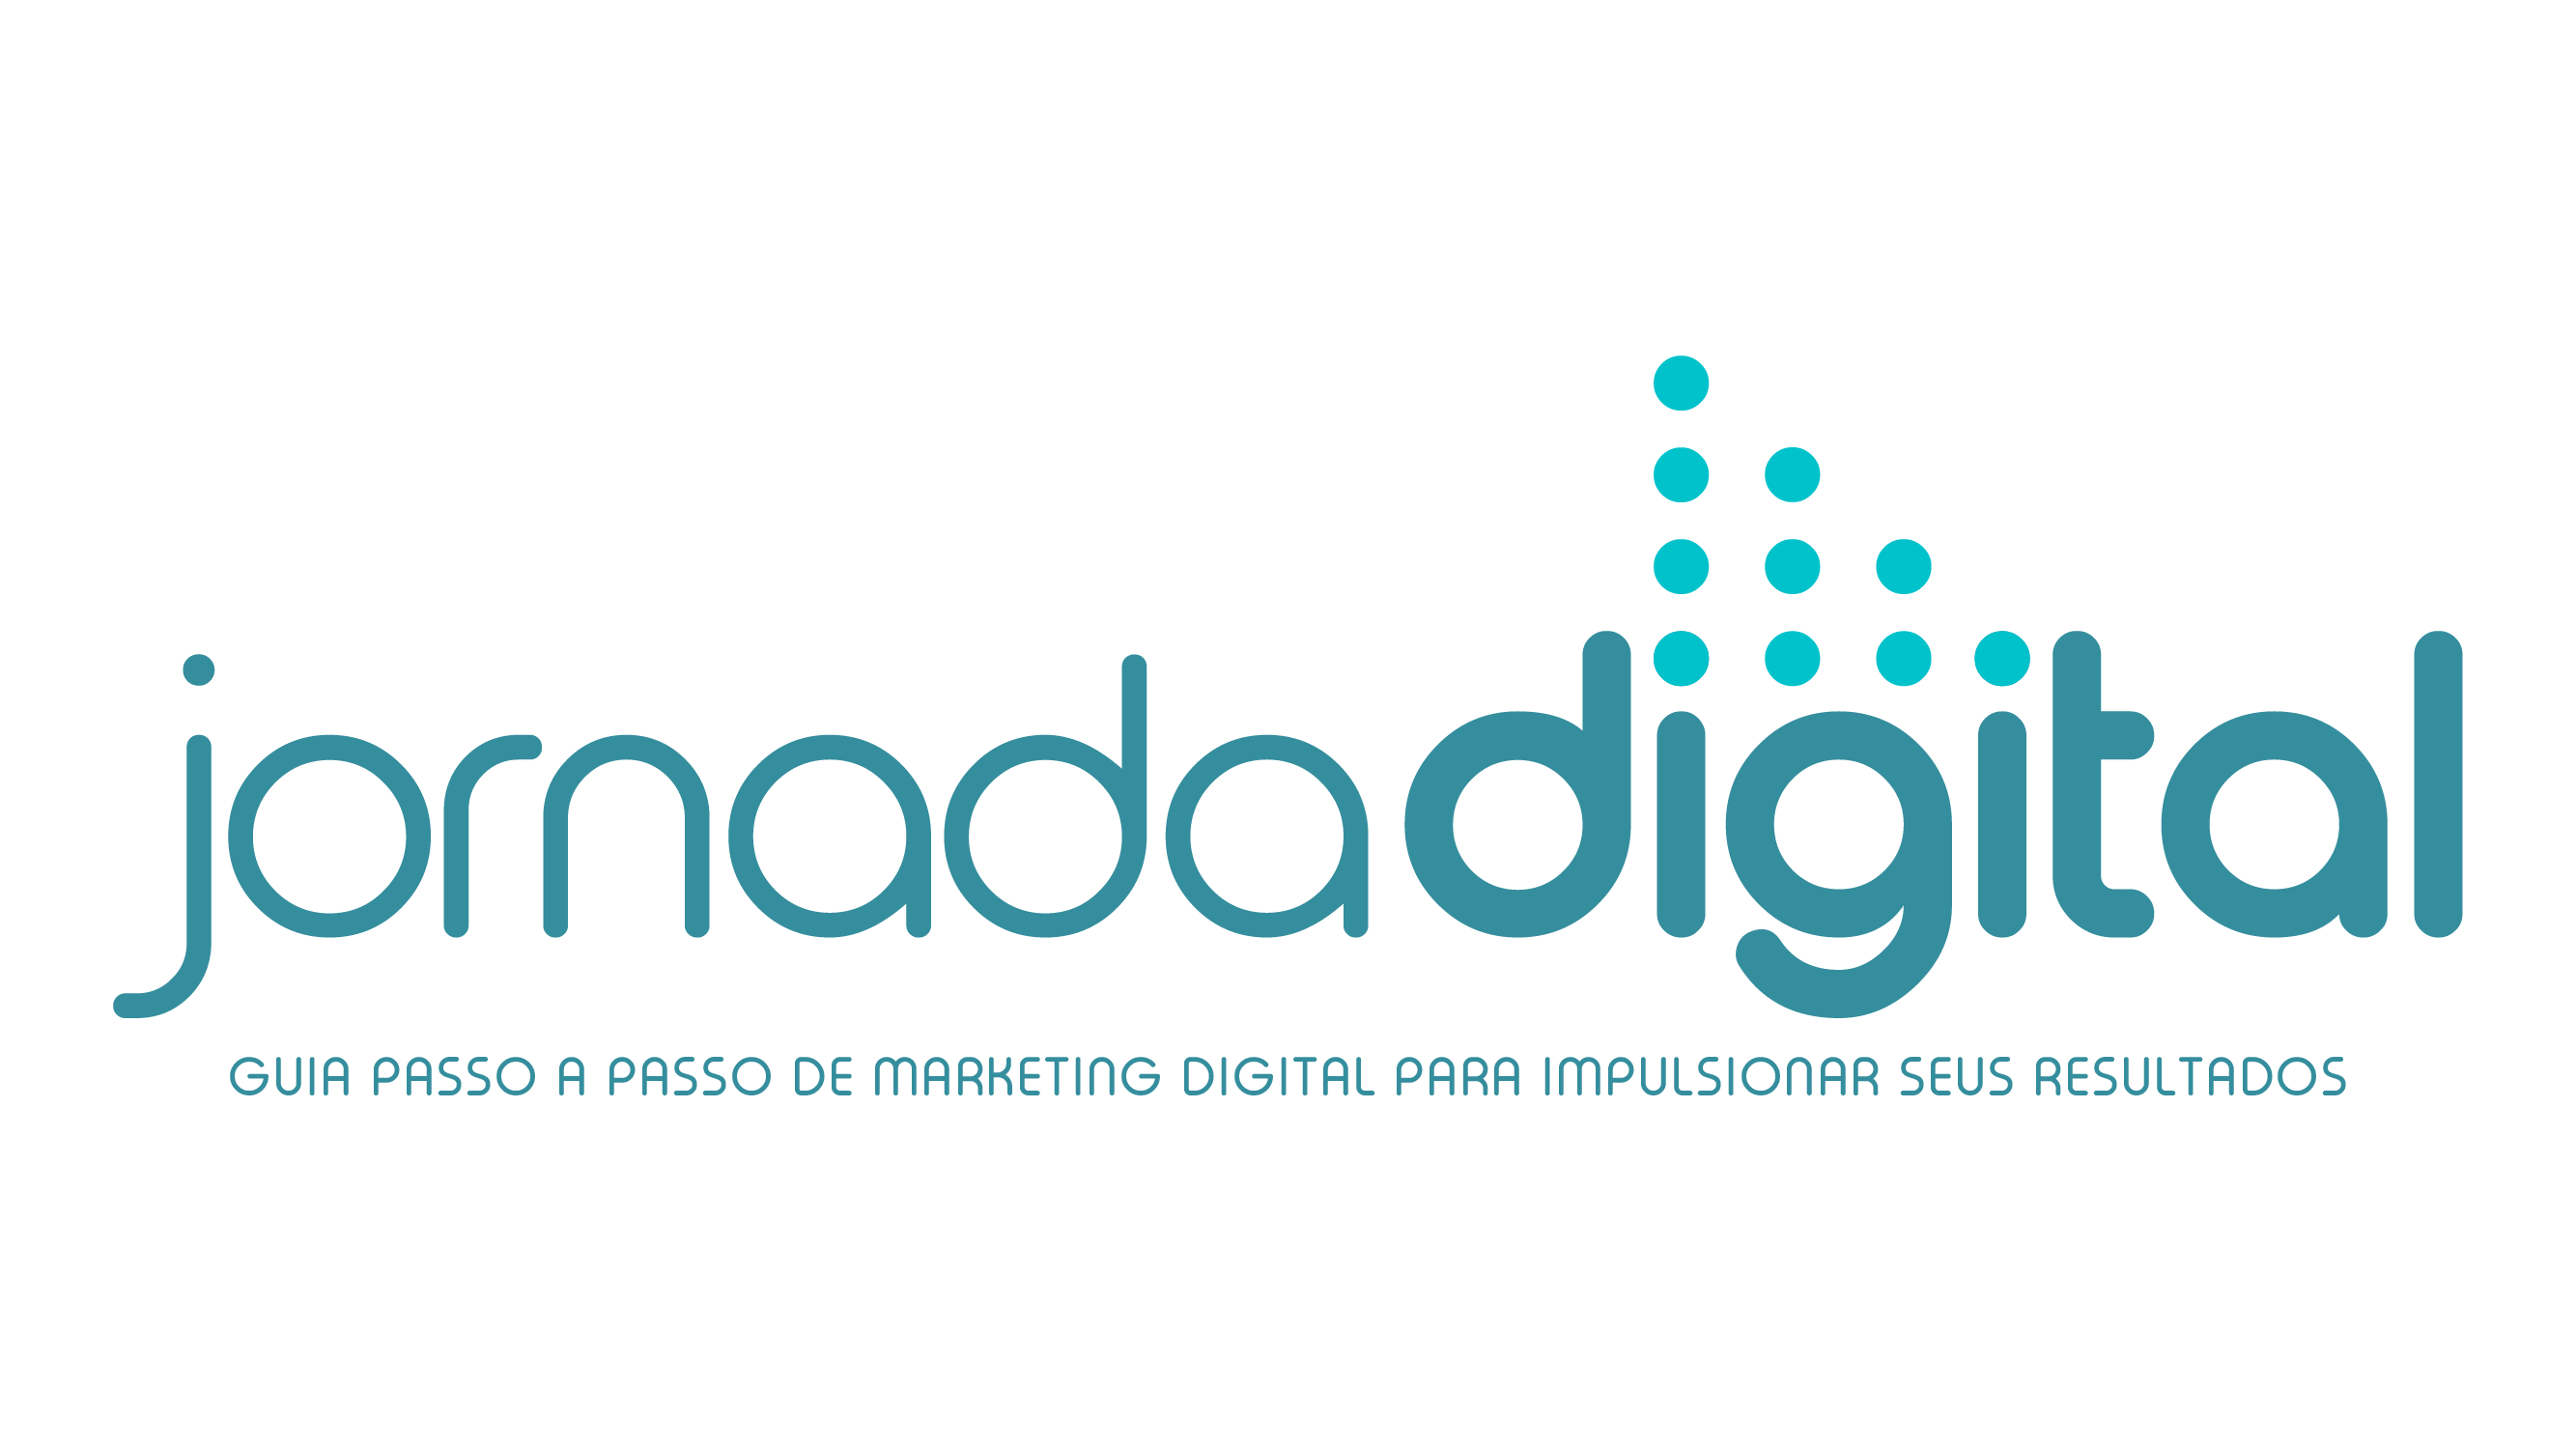 JORNADA DIGITAL LOGO V2 04 - Home